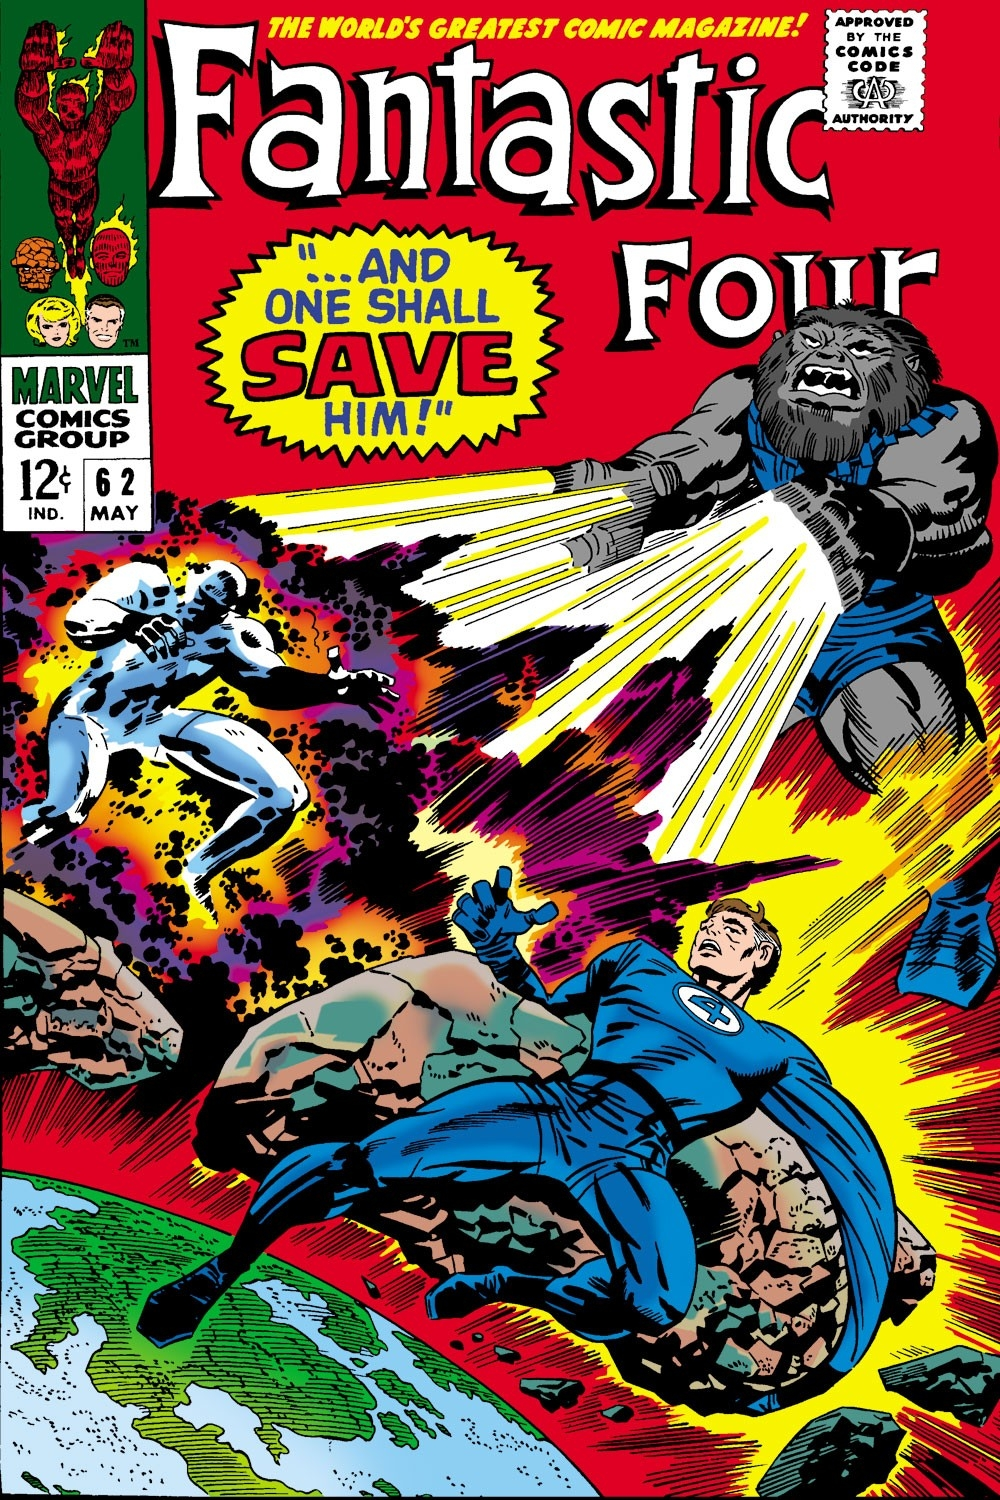 Fantastic Four (1961) #62 | Comic Issues | Marvel  Julan Code 2021